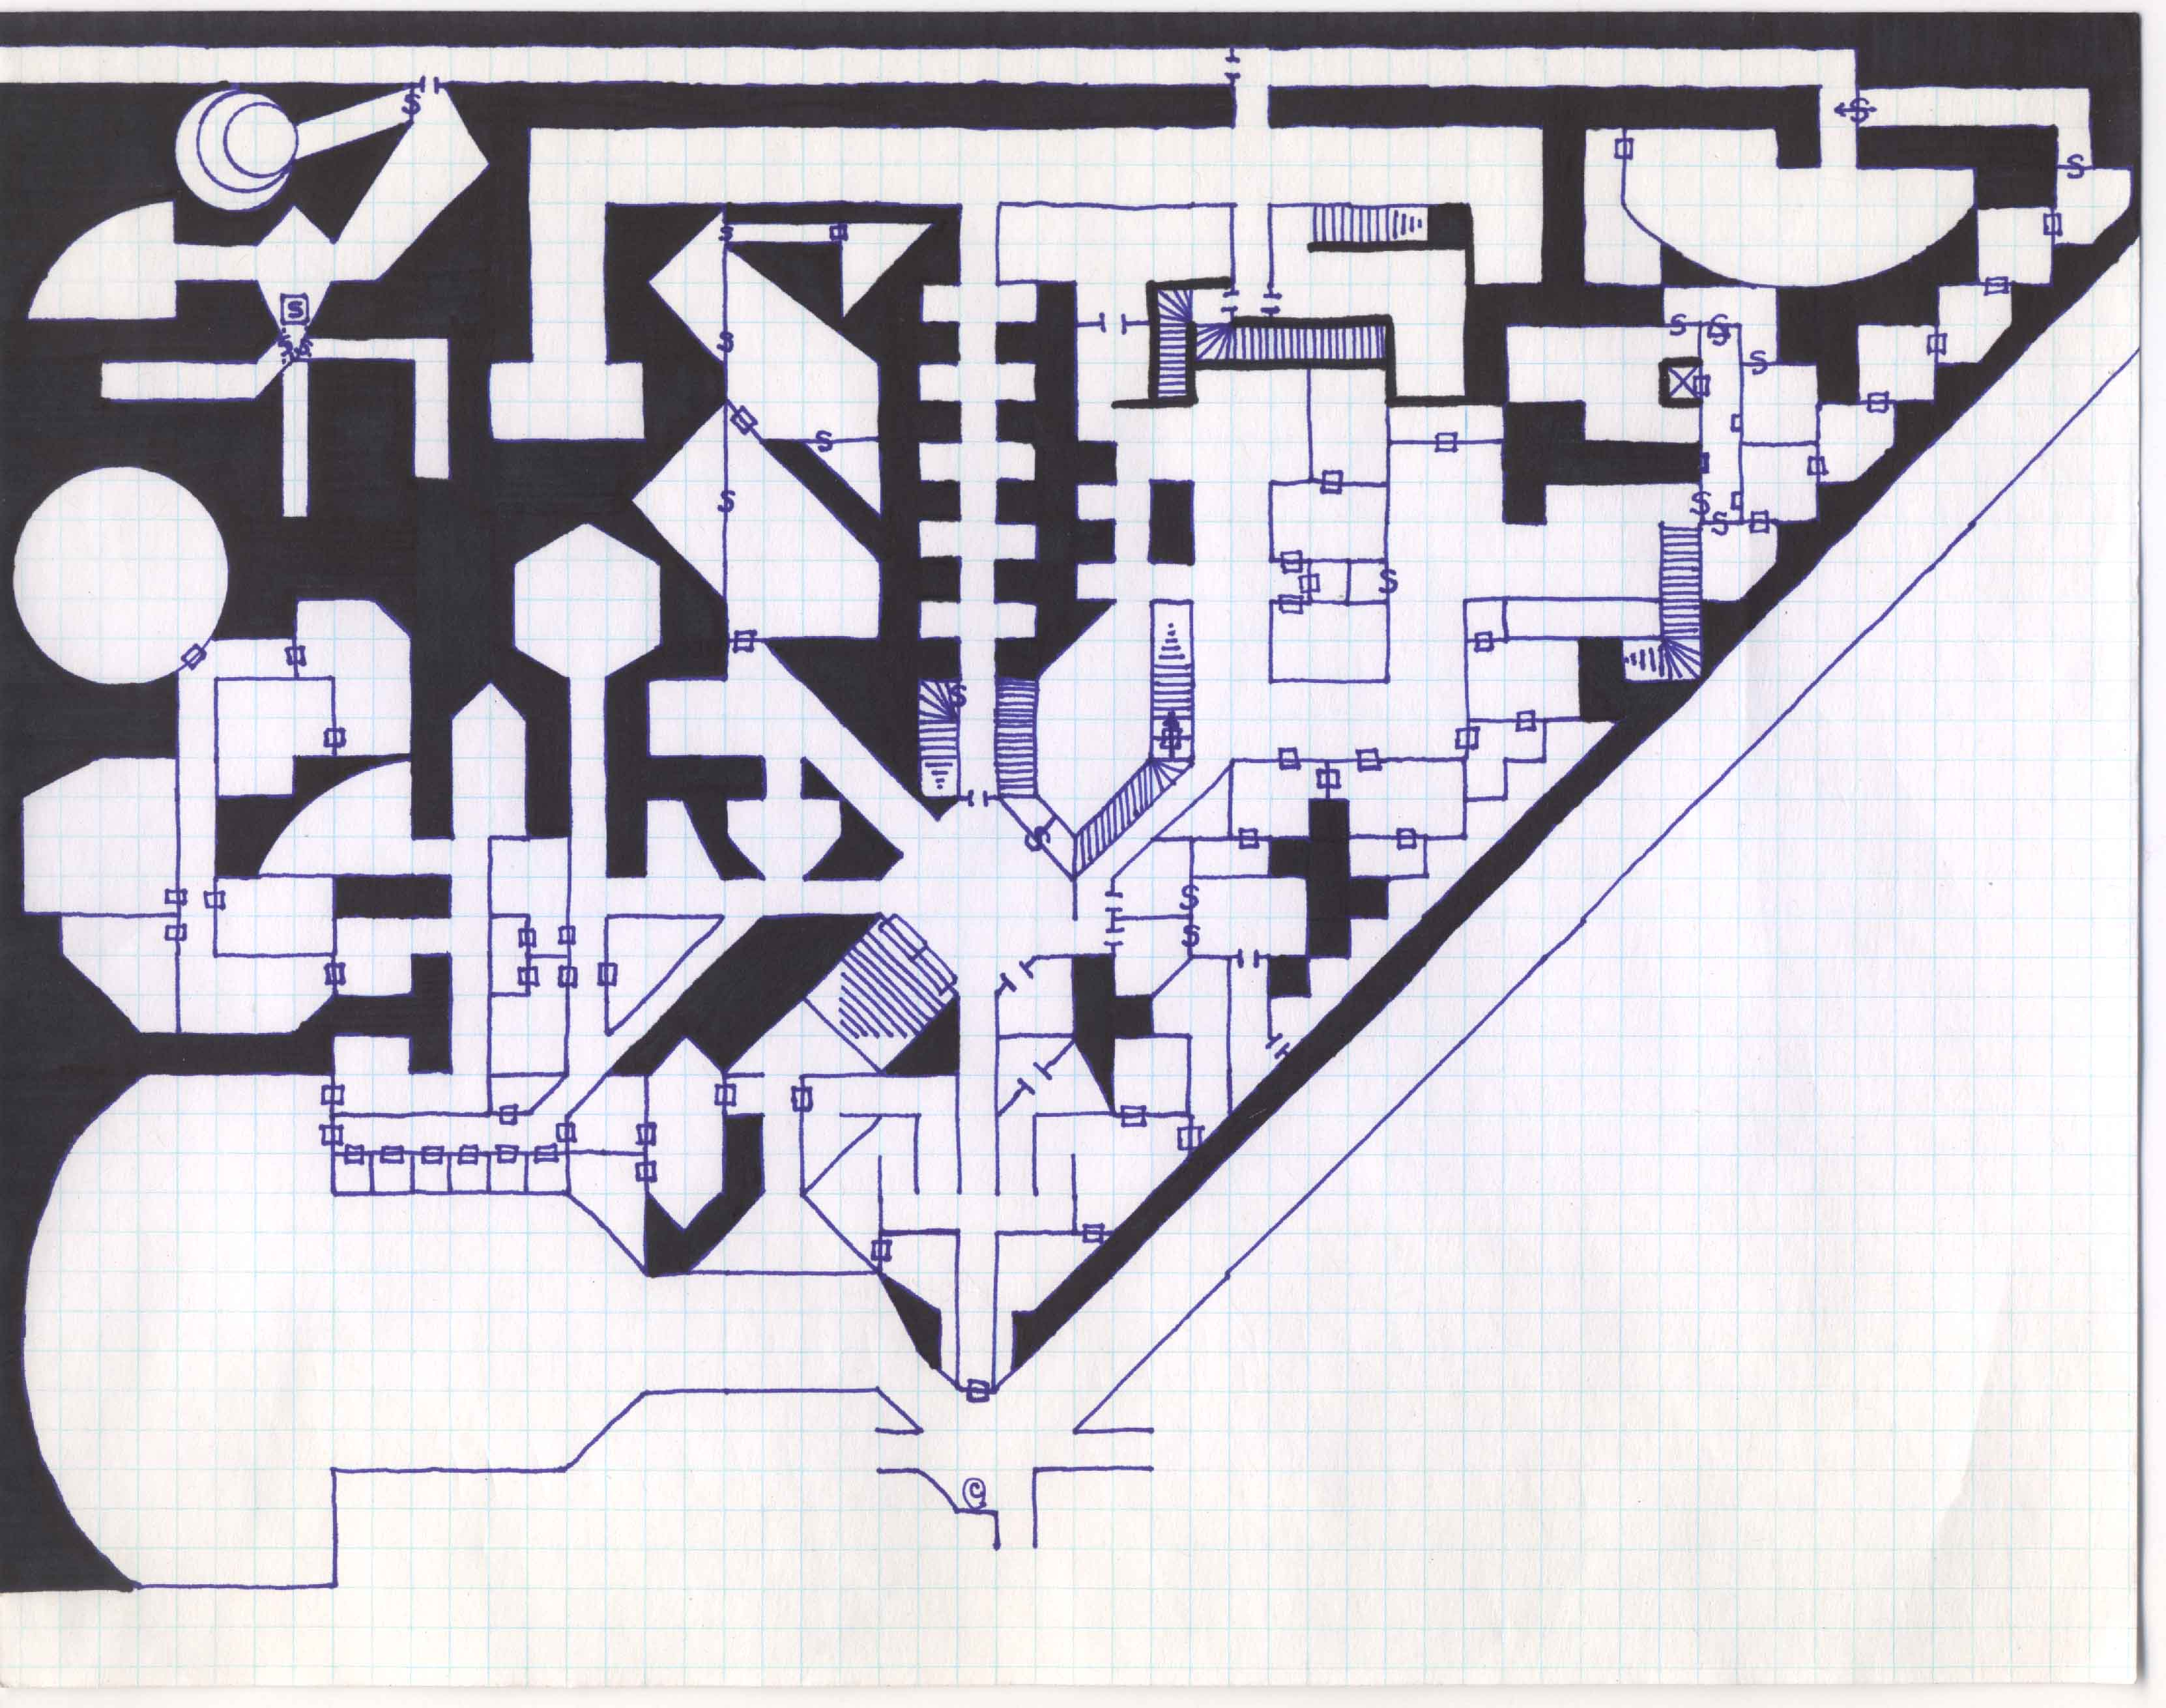 Grodogs greyhawk castle archive grodogs version of greyhawk castle first version of map biocorpaavc Image collections